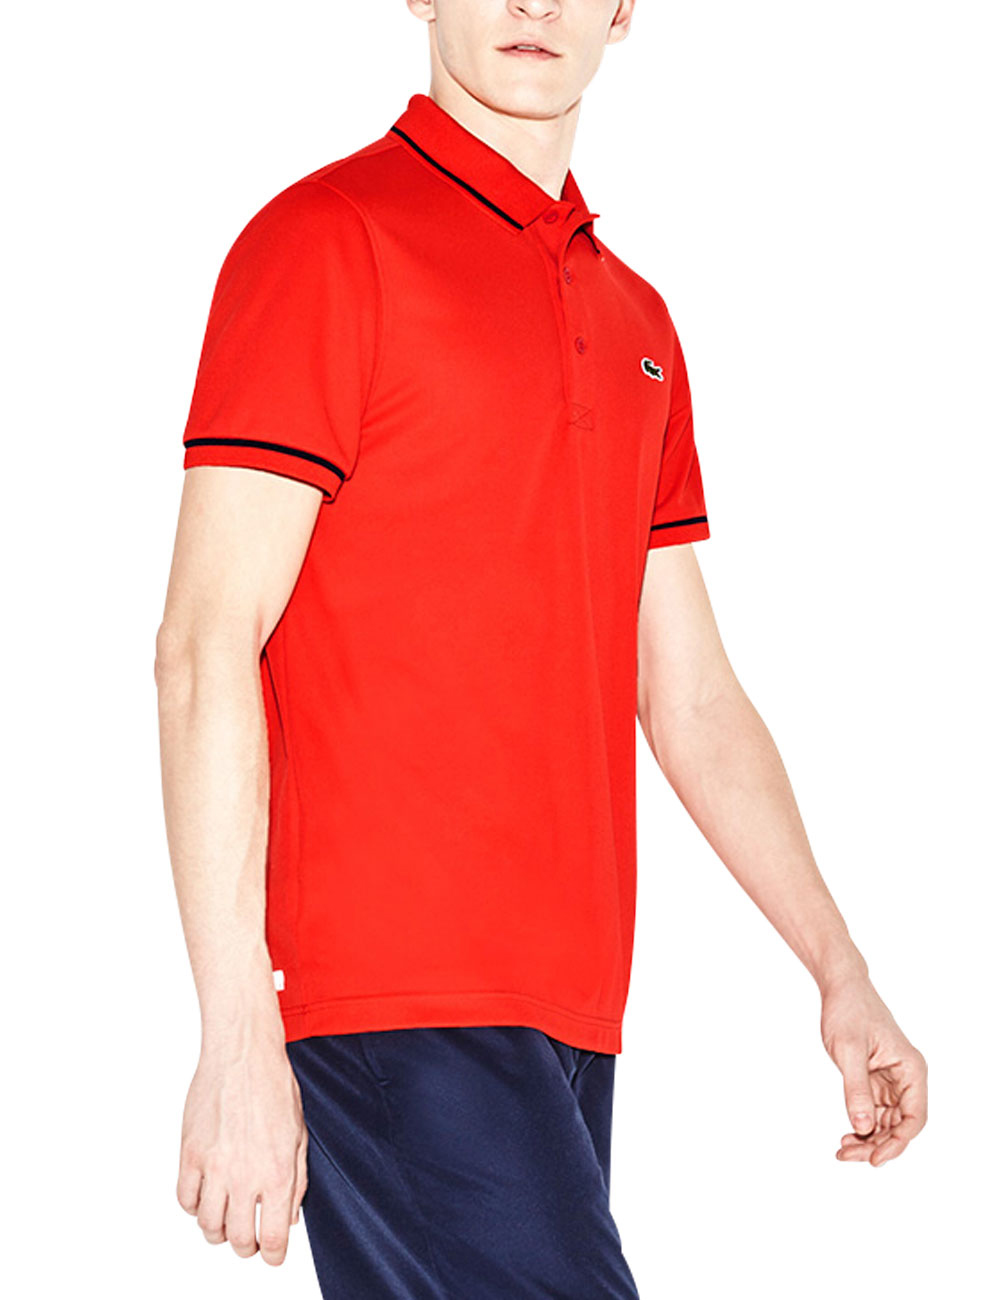 finest selection 672aa fc34d Herren-Polo, Lacoste, rot